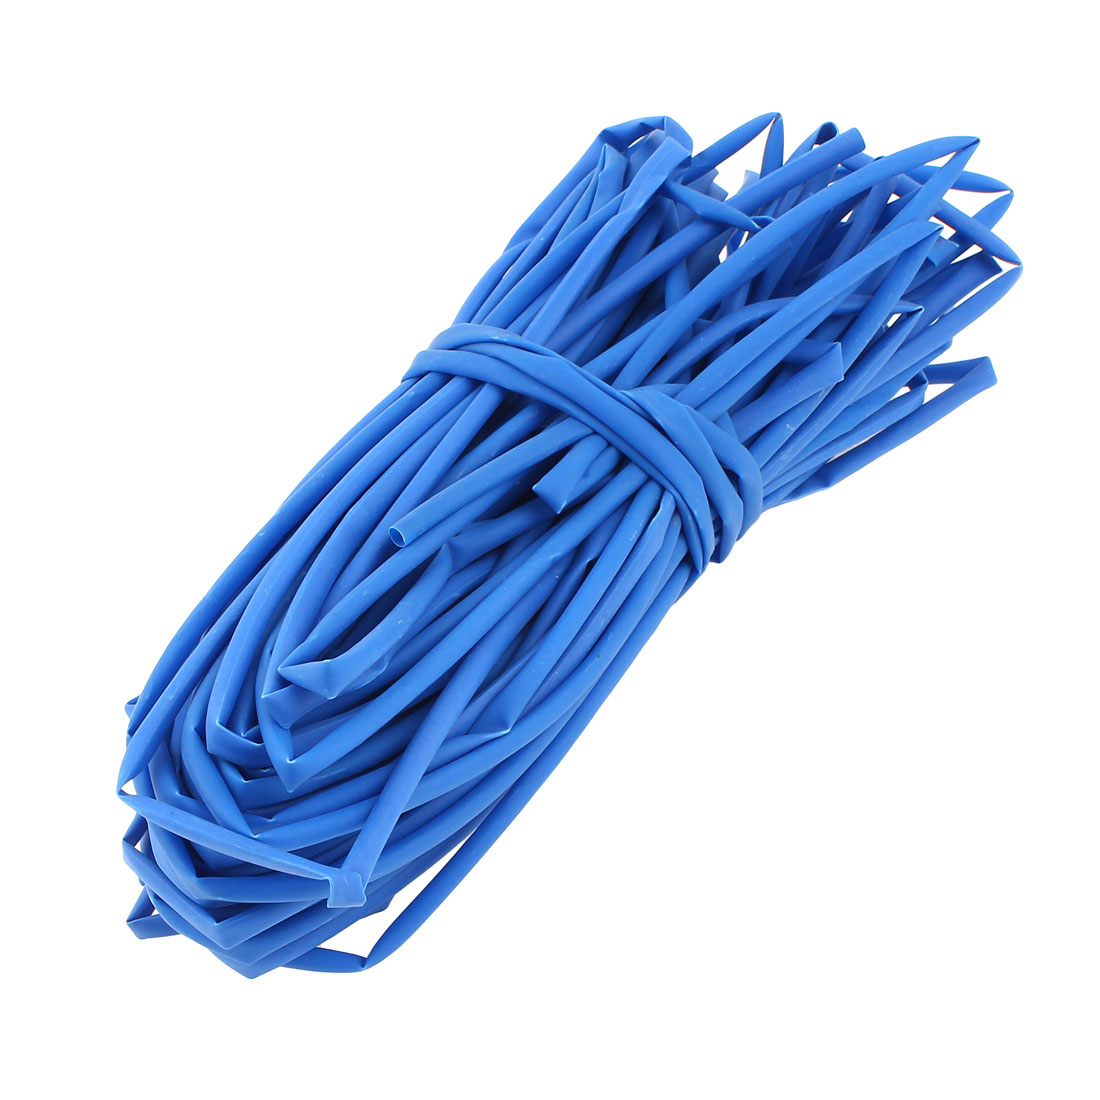 Ratio 2:1 Blue Polyolefin 3mm Dia Heat Shrink Cover Wiring Shrinkable Tube 20M